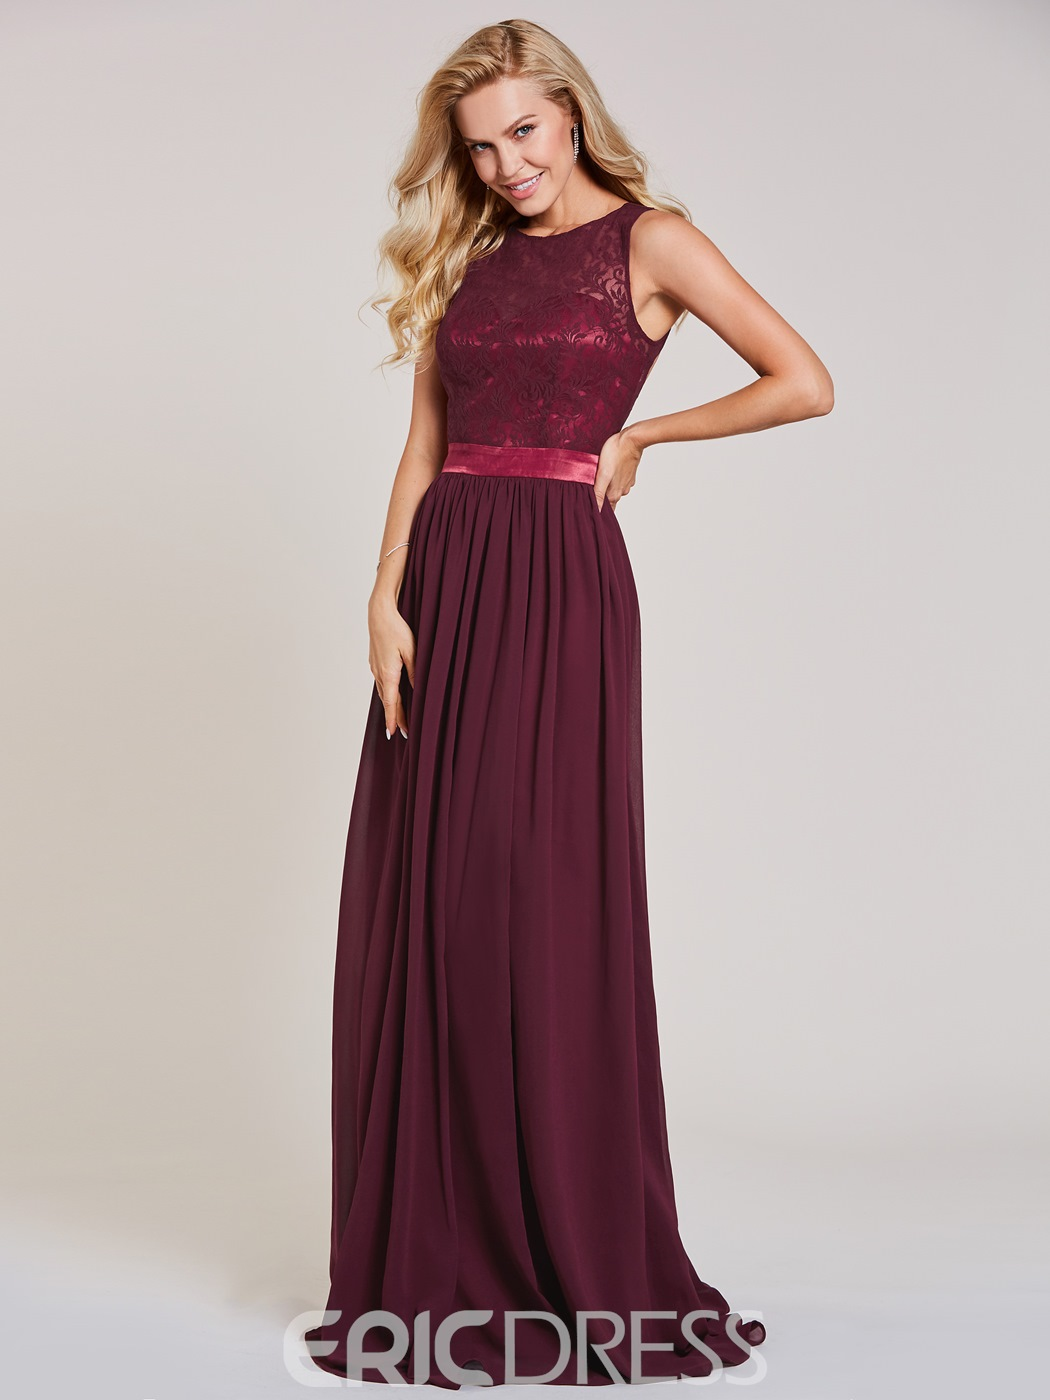 Ericdress Scoop Neck Backless A Line Lace Evening Dress